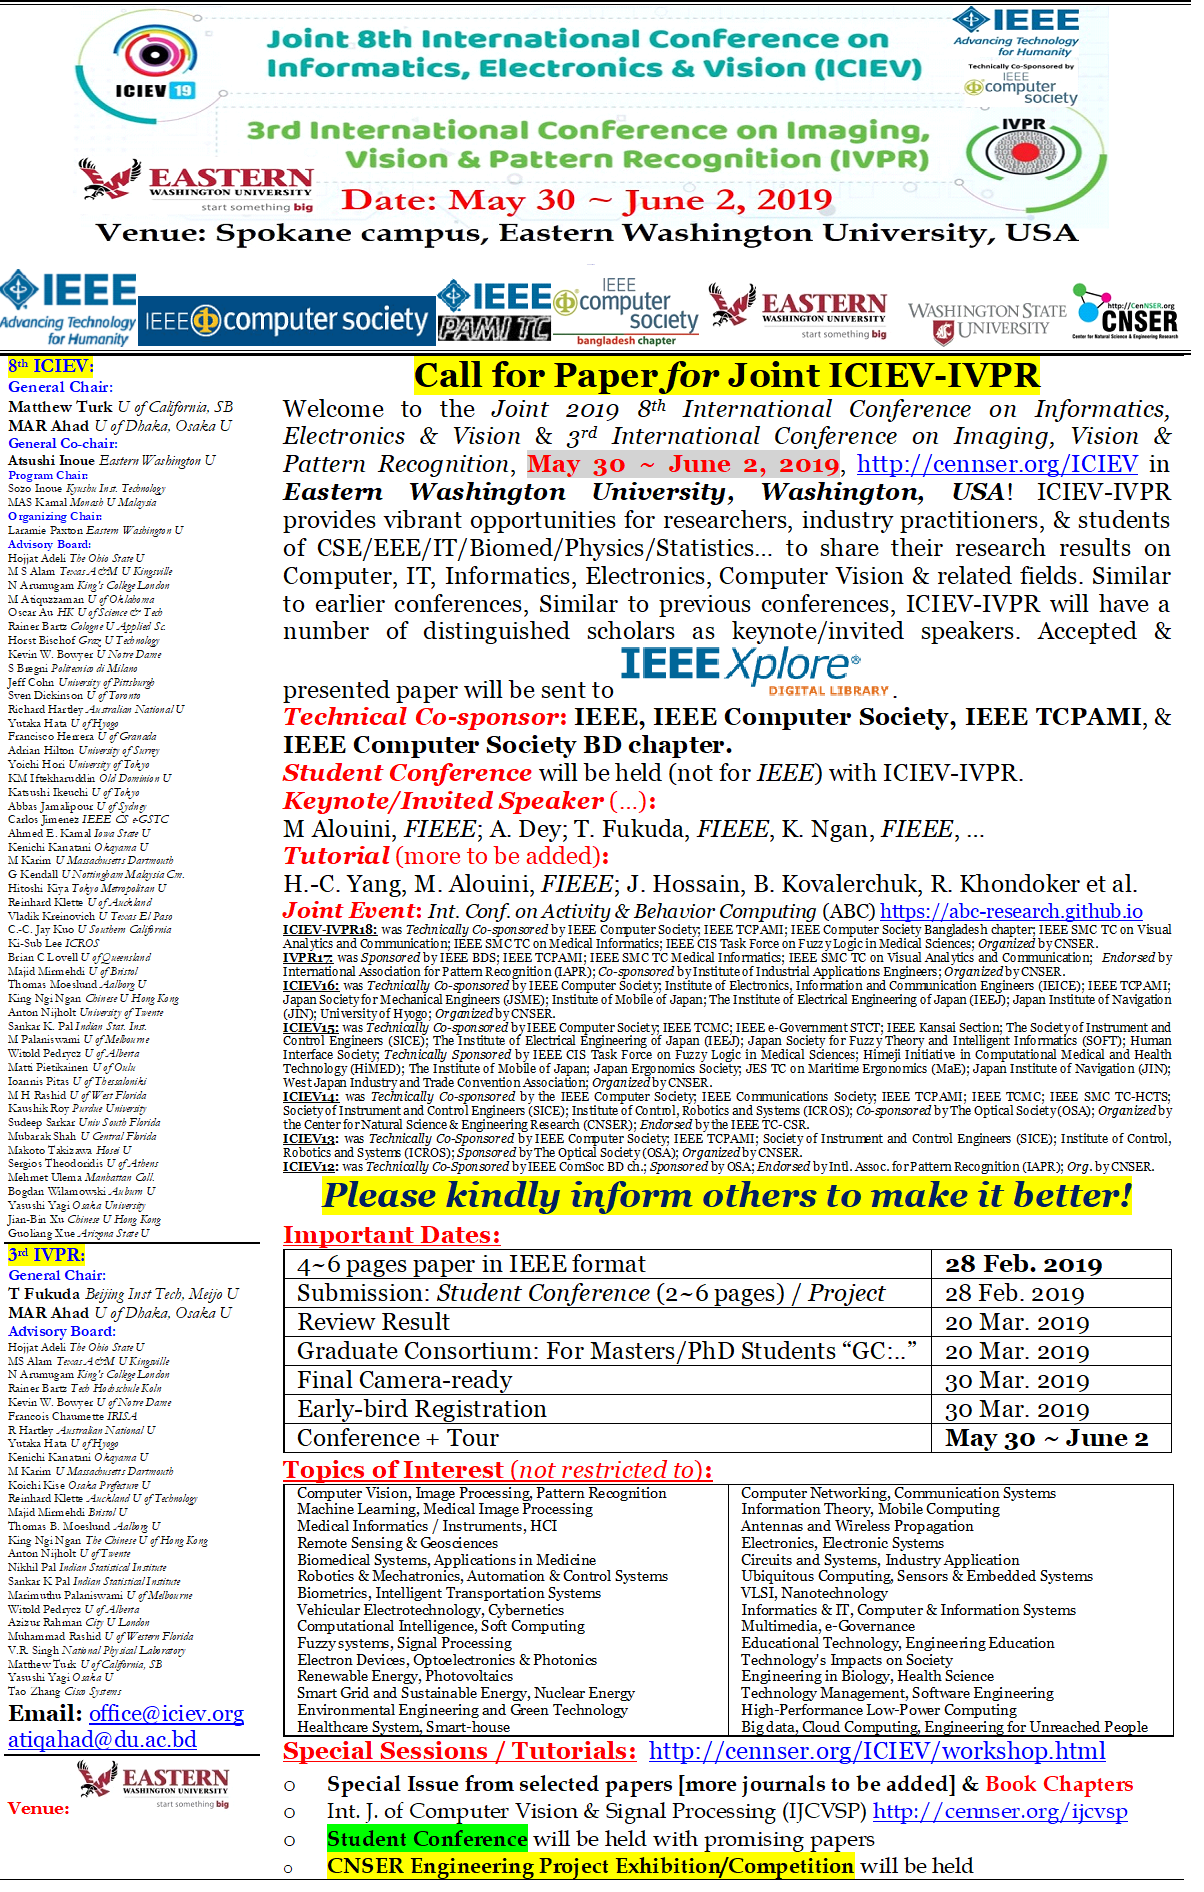 024 Cfpiciev Research Paper Ieee Papers In Computer Science Phenomenal Pdf Full